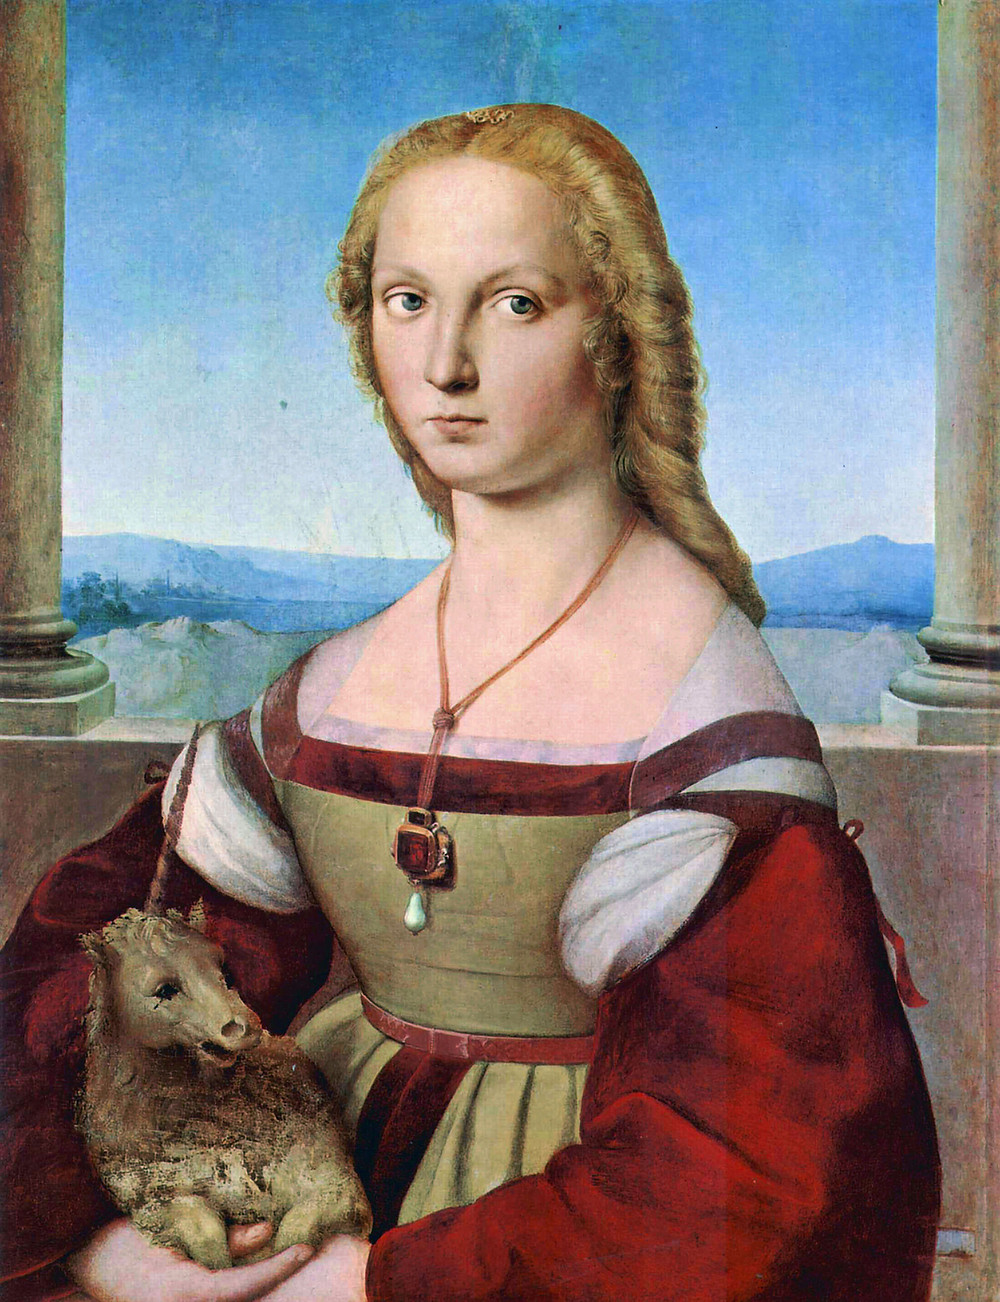 Raphael's Young Woman With a Unicorn in Rome's Borghese Gallery